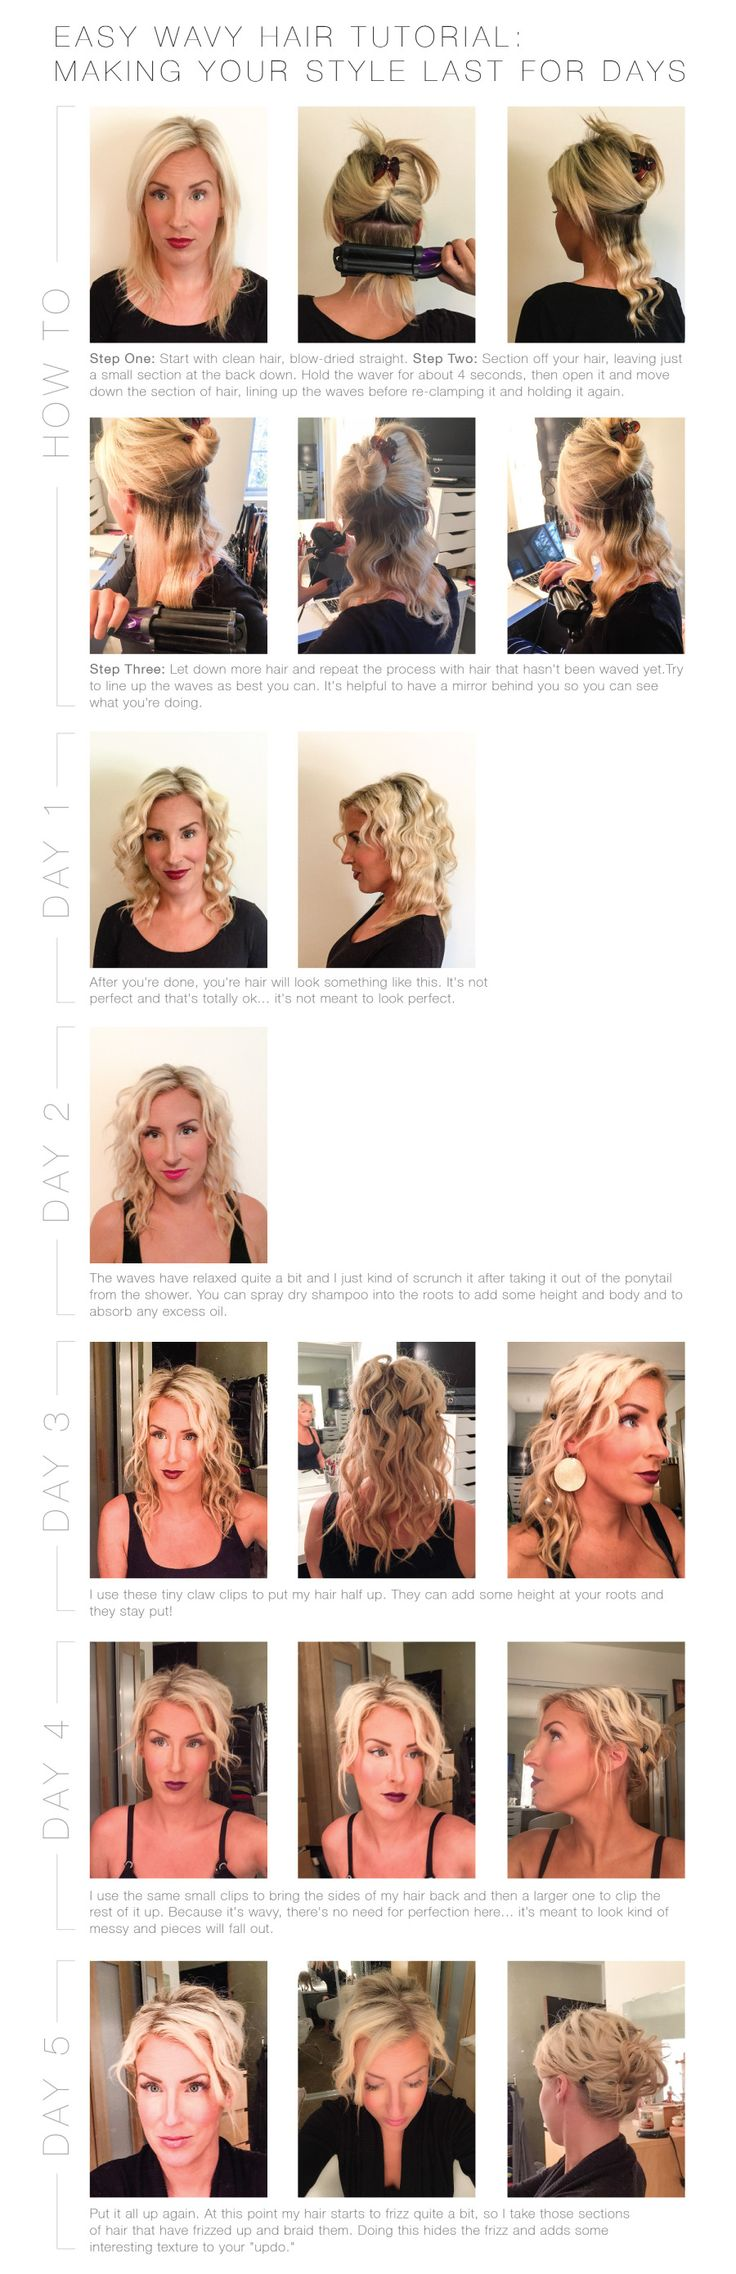 Best 25 wavy hair tutorials ideas on pinterest wavy beach hair easy wavy hair tutorial how to make your hairstyle last for days urmus Gallery